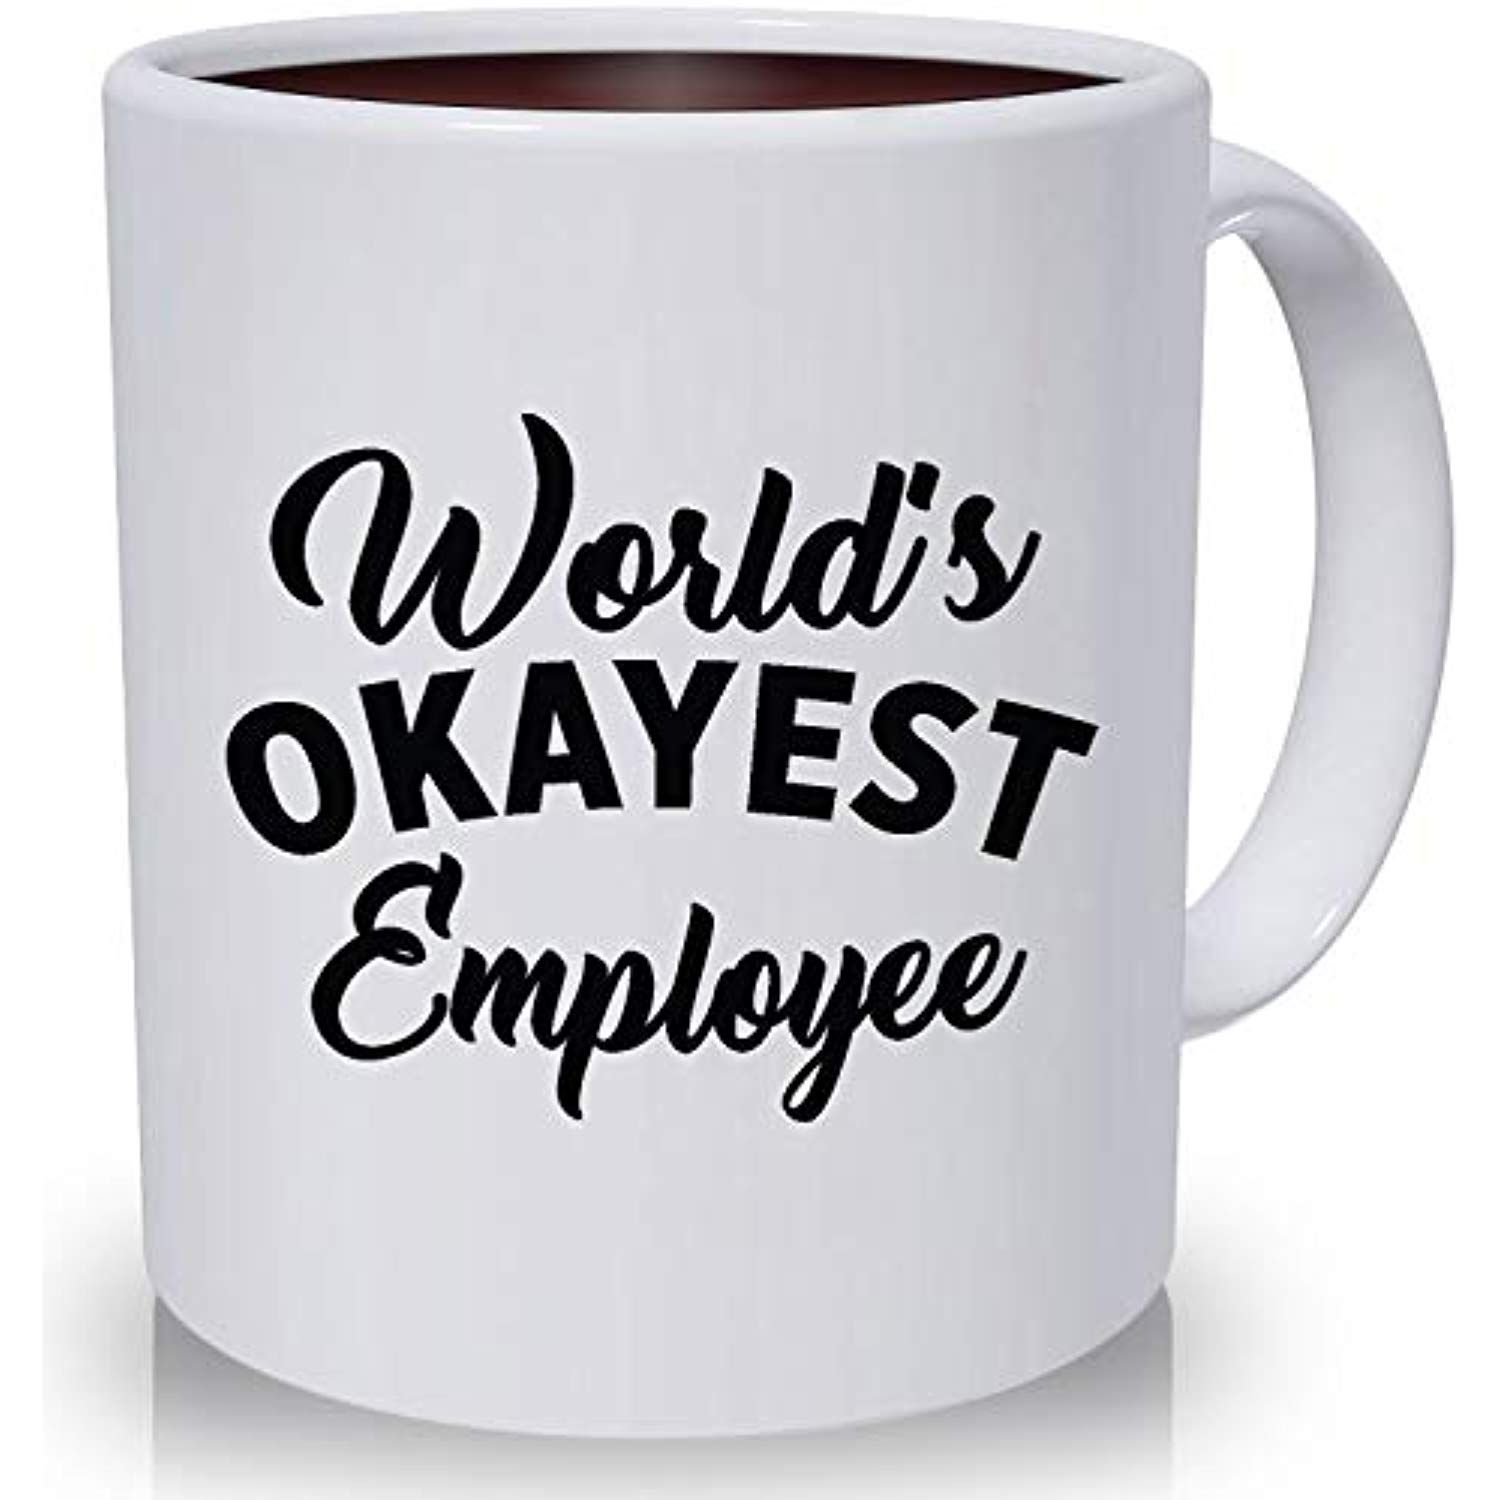 e0bbb2555a4 Best Funny Mugs Promotion Gift, World's Okayest Employee Funny ...